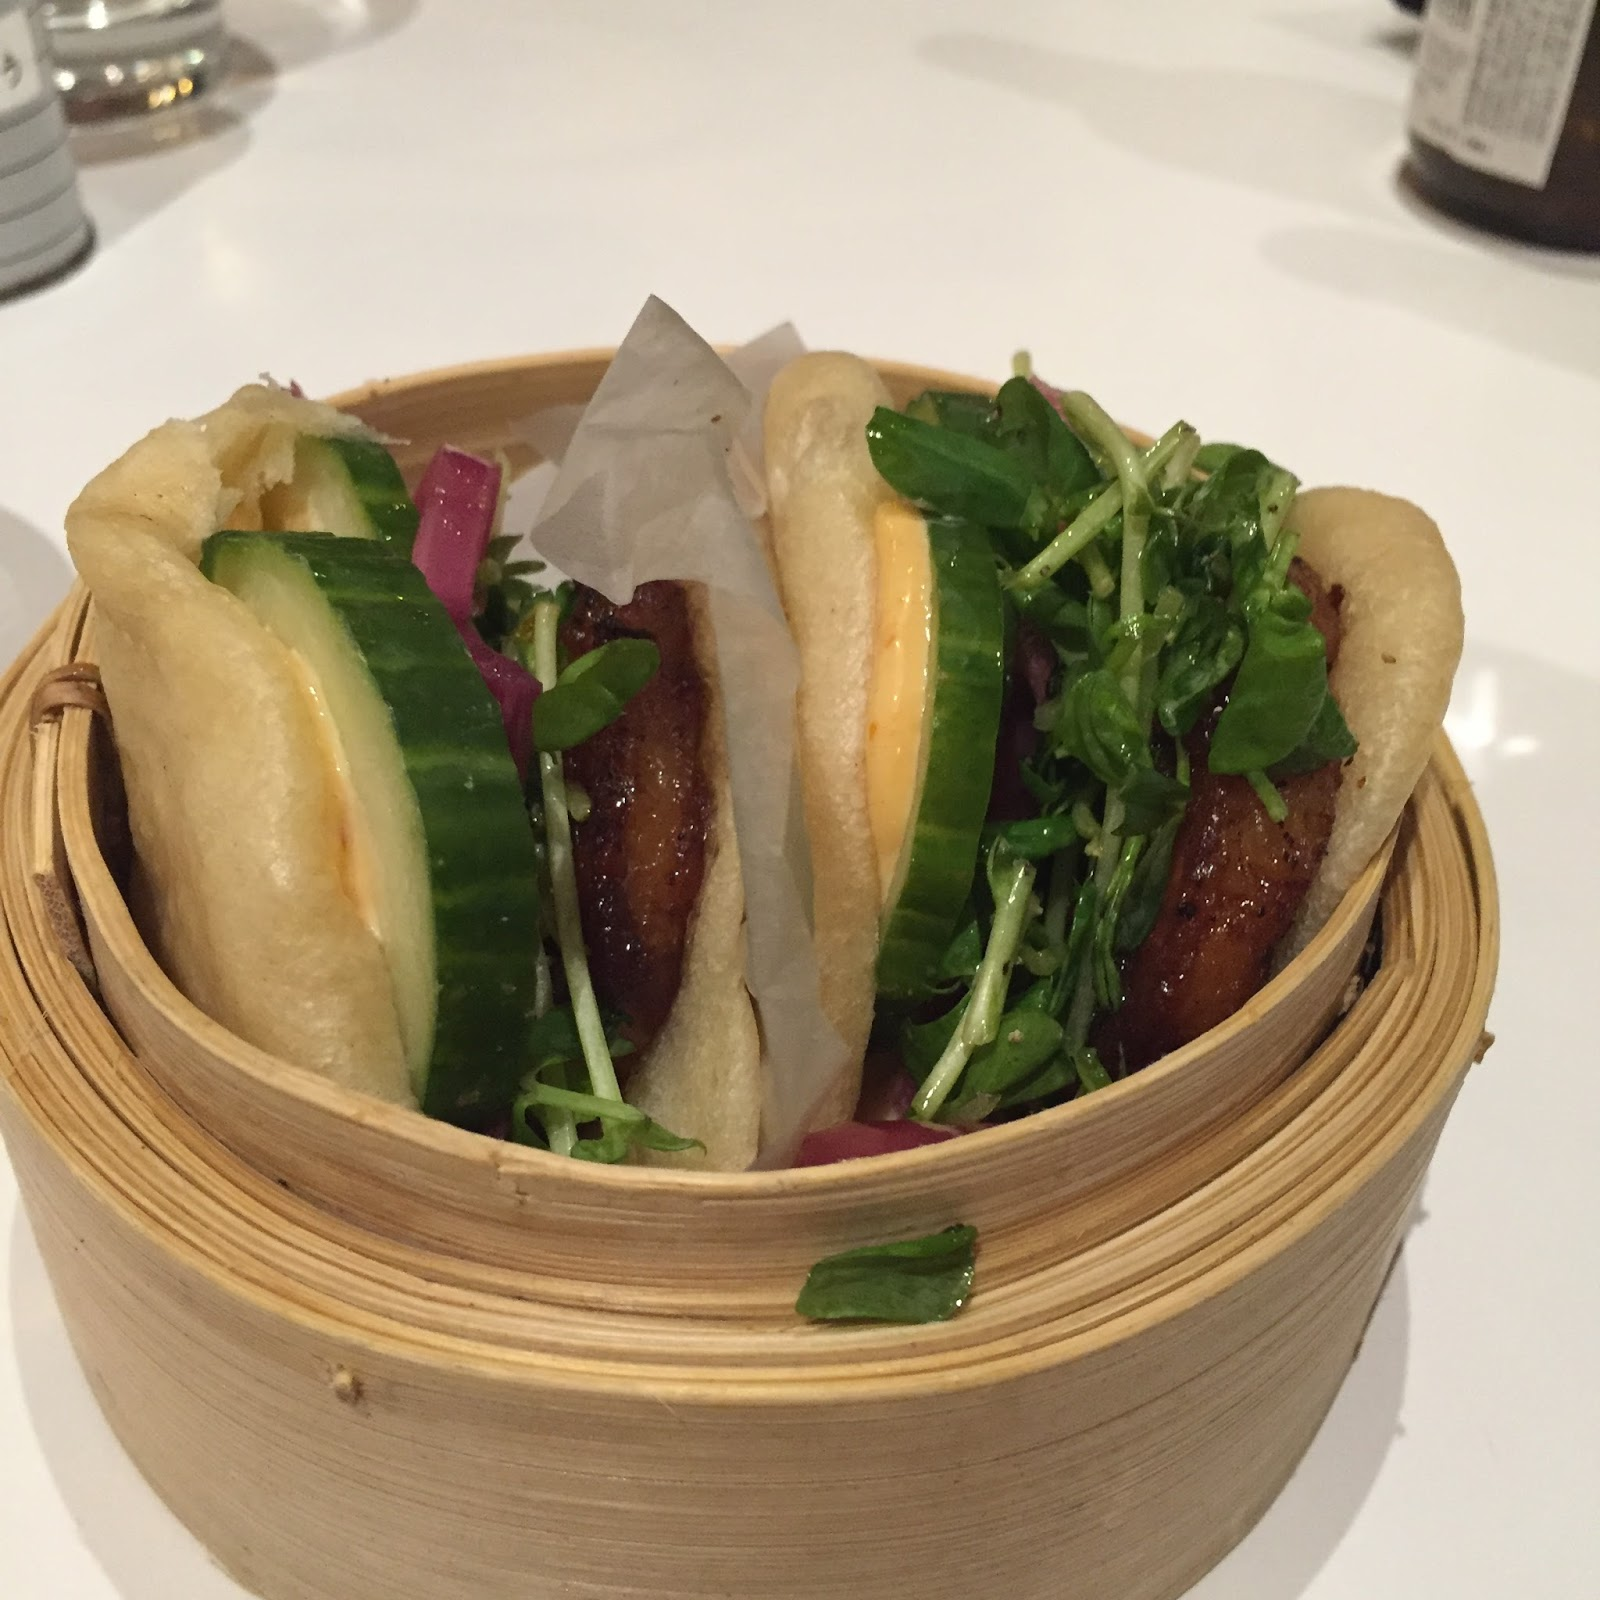 Skip to malou philippines cookbook blog on feedspot rss feed the pork belly bun is unlike all the pork belly buns that ive tasted the bun is light and soft and the aoili had the perfect hint of heat forumfinder Gallery